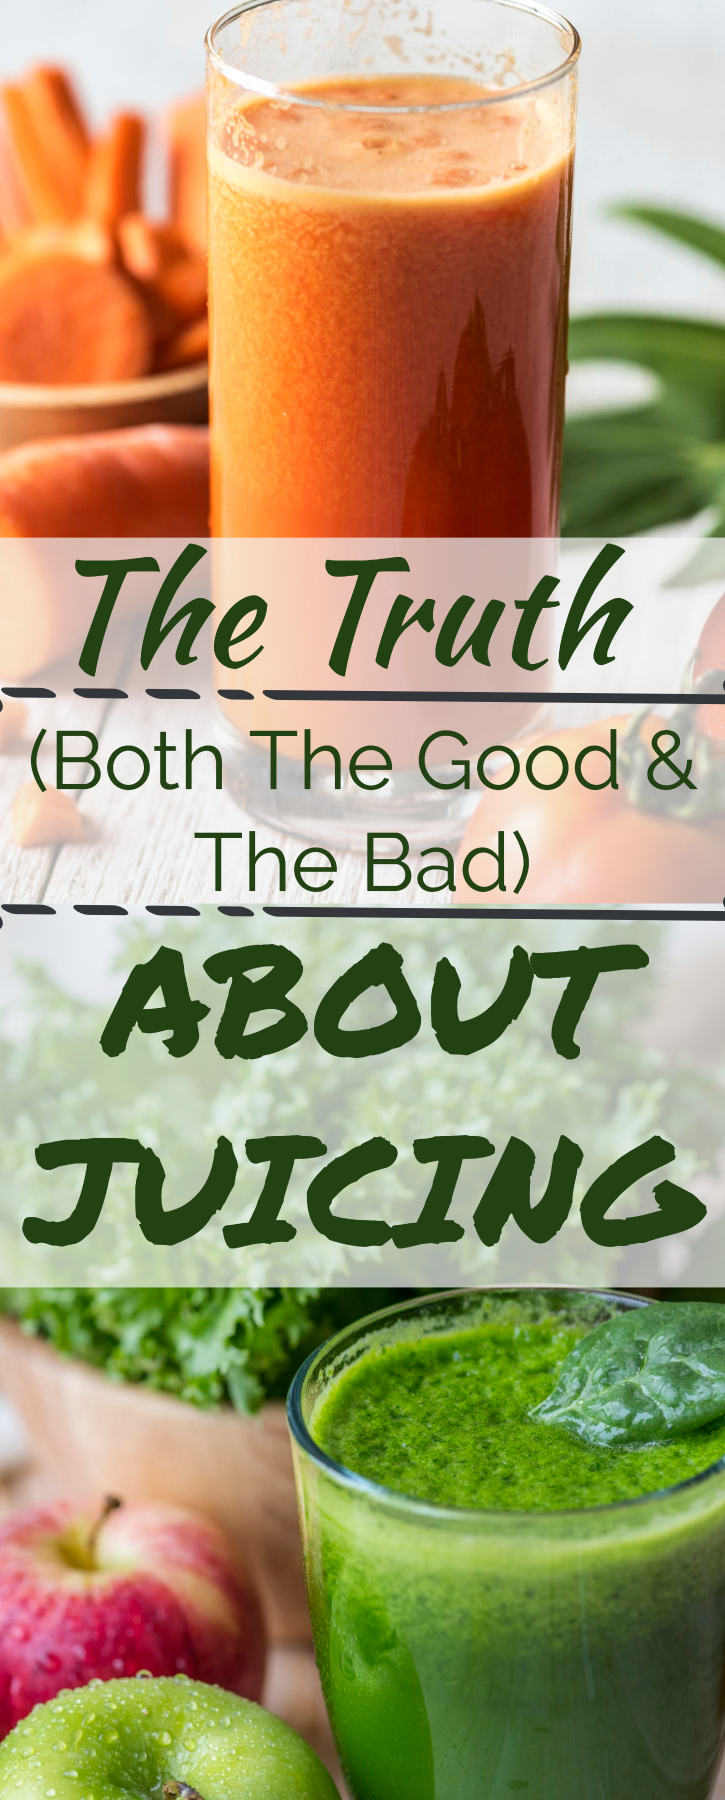 The truth about juicing (juicing benefits/ is juicing healthy/ risks of juicing. healthiest vegetable juice/ healthy juice recipe/ juice detox/ juicing program/ vegetable juice/ carrot juice/ kale juice/ beet juice/ fruit juice healthy/ sugar in juice/ calories in vegetable juice/ healthiest juices)